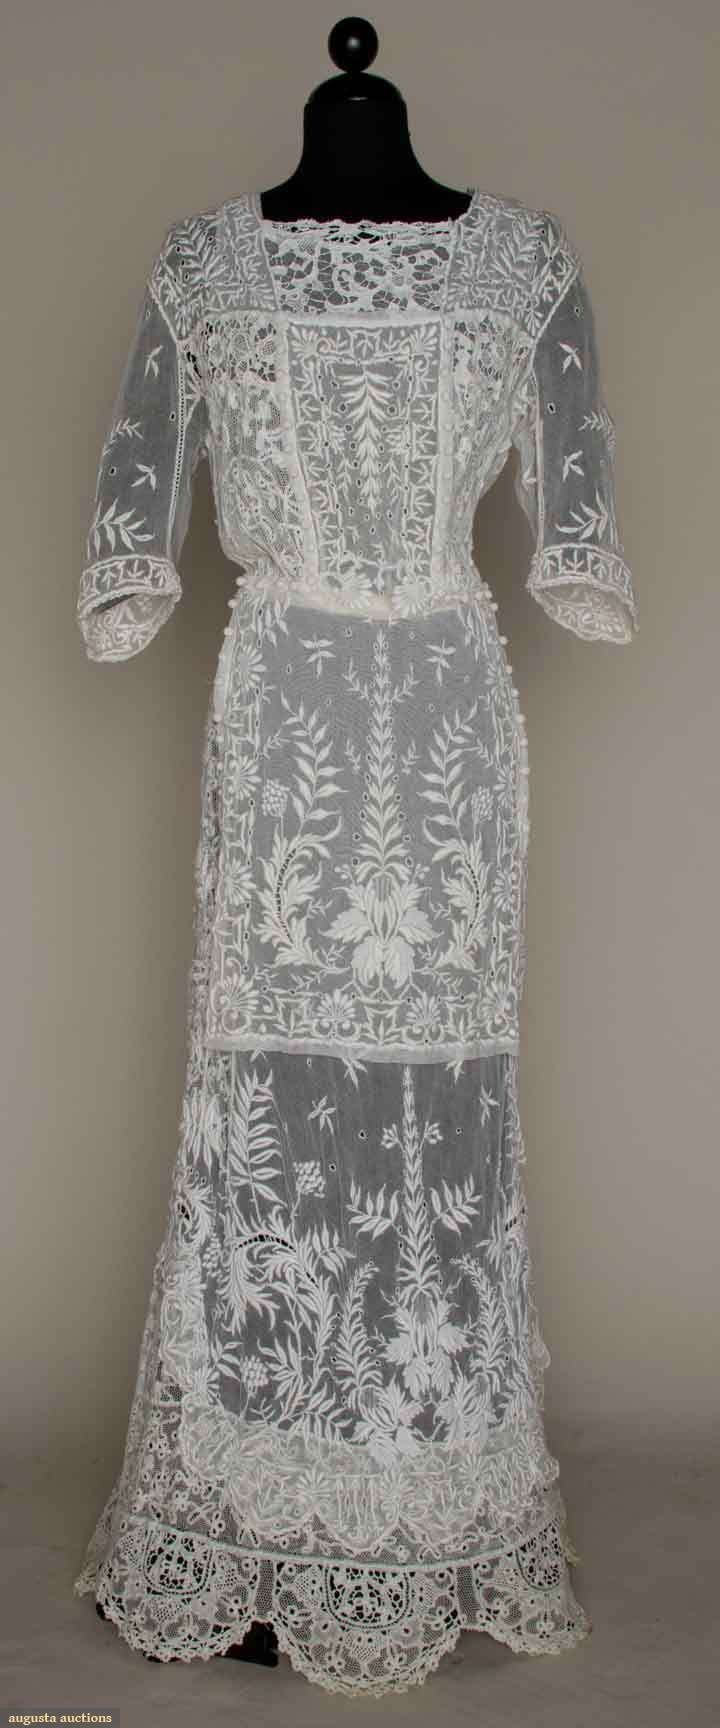 White Embroidered Lace Tea Gown c. 1912. - more → http://sherryfashiondesignblog.blogspot.com/2012/04/white-embroidered-lace-tea-gown-c-1912.html